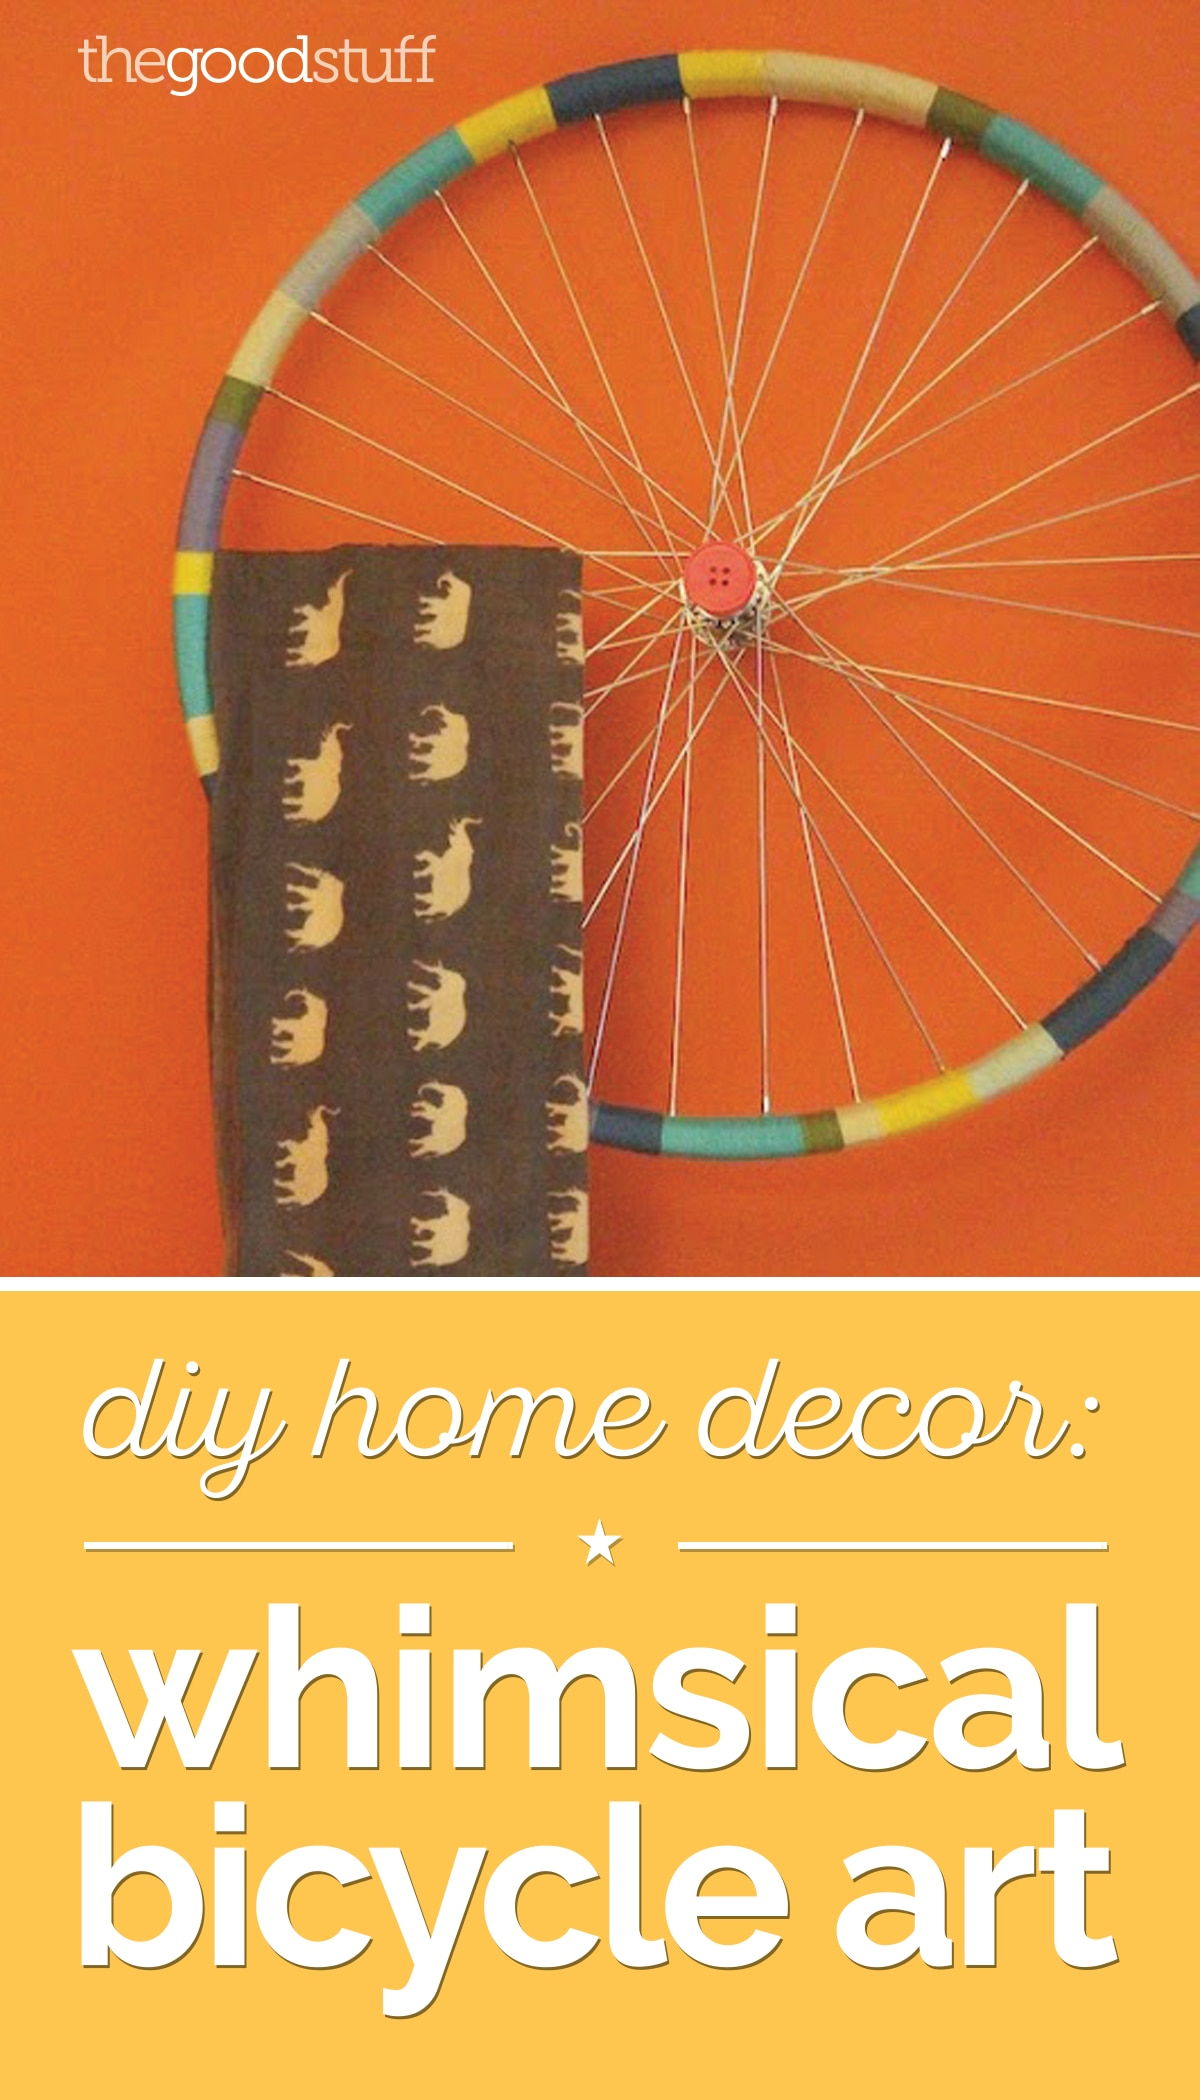 DIY Home Decor: Whimsical Bicycle Art | thegoodstuff